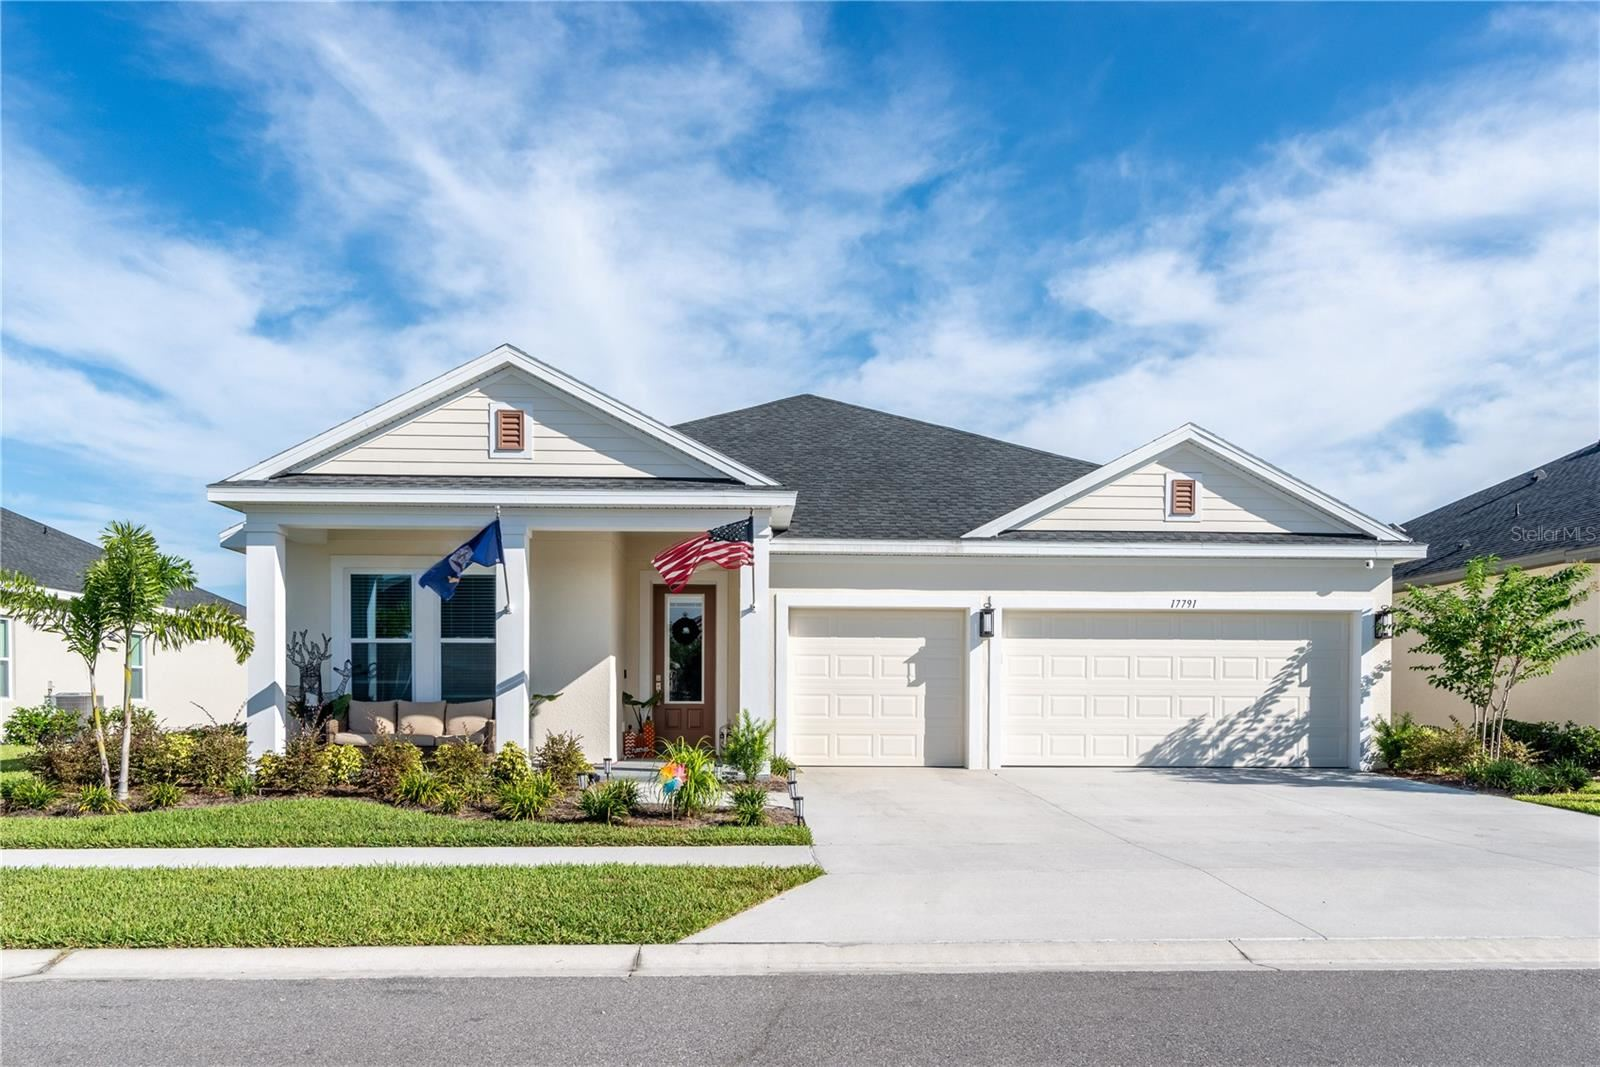 17791 PASSIONFLOWER CIRCLE, Clermont, FL 34714 - #: S5057506